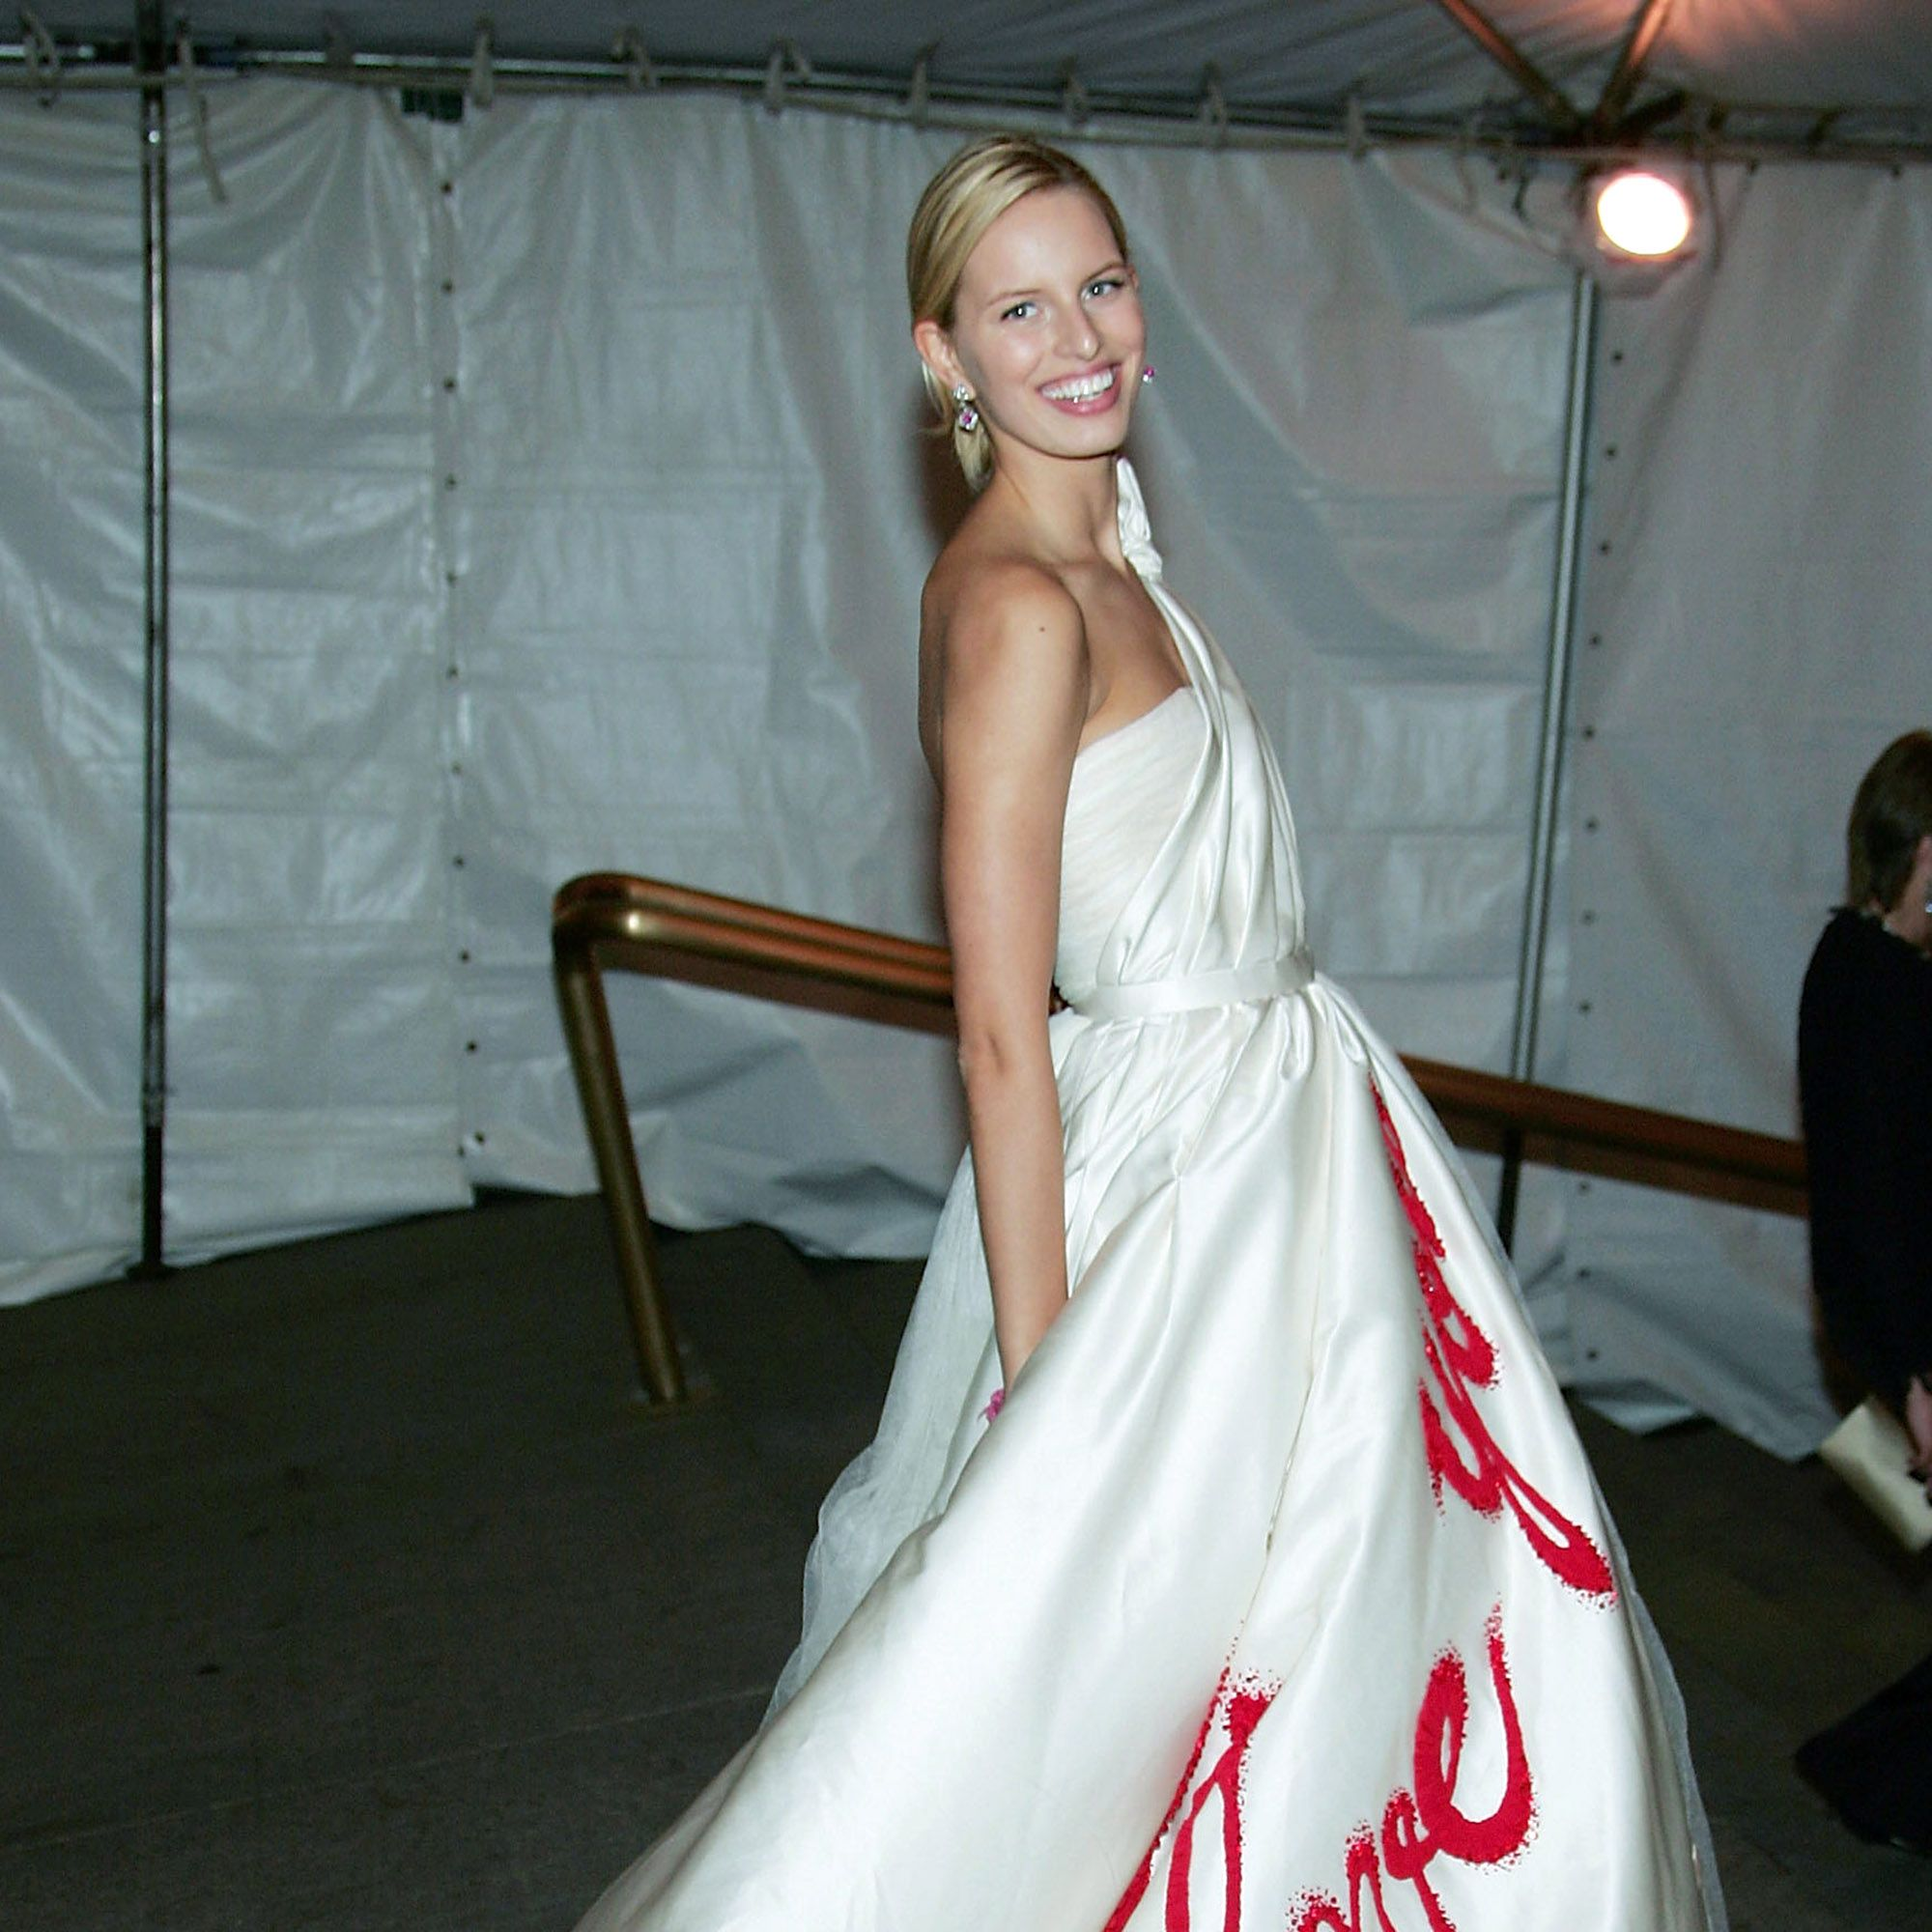 NEW YORK - MAY 02:  Model Karolina Kurkova attends the MET Costume Institute Gala Celebrating Chanel at the Metropolitan Museum of Art May 2, 2005 In New York City. (Photo by Evan Agostini/Getty Images) *** Local Caption *** Karolina Kurkova